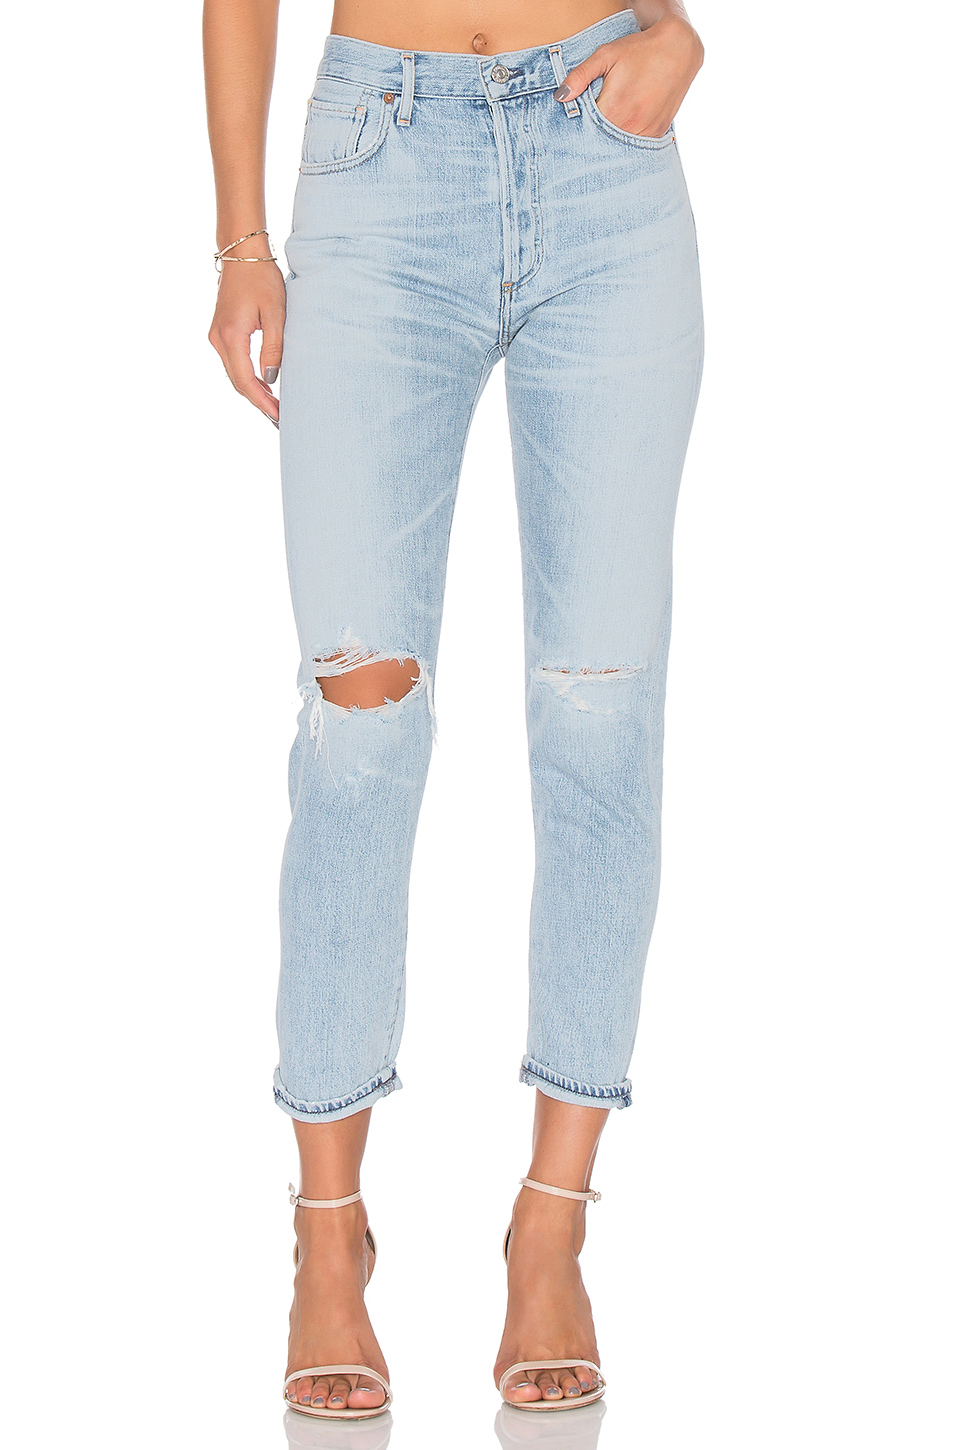 CITIZENS OF HUMANITY Liya jeans - $257